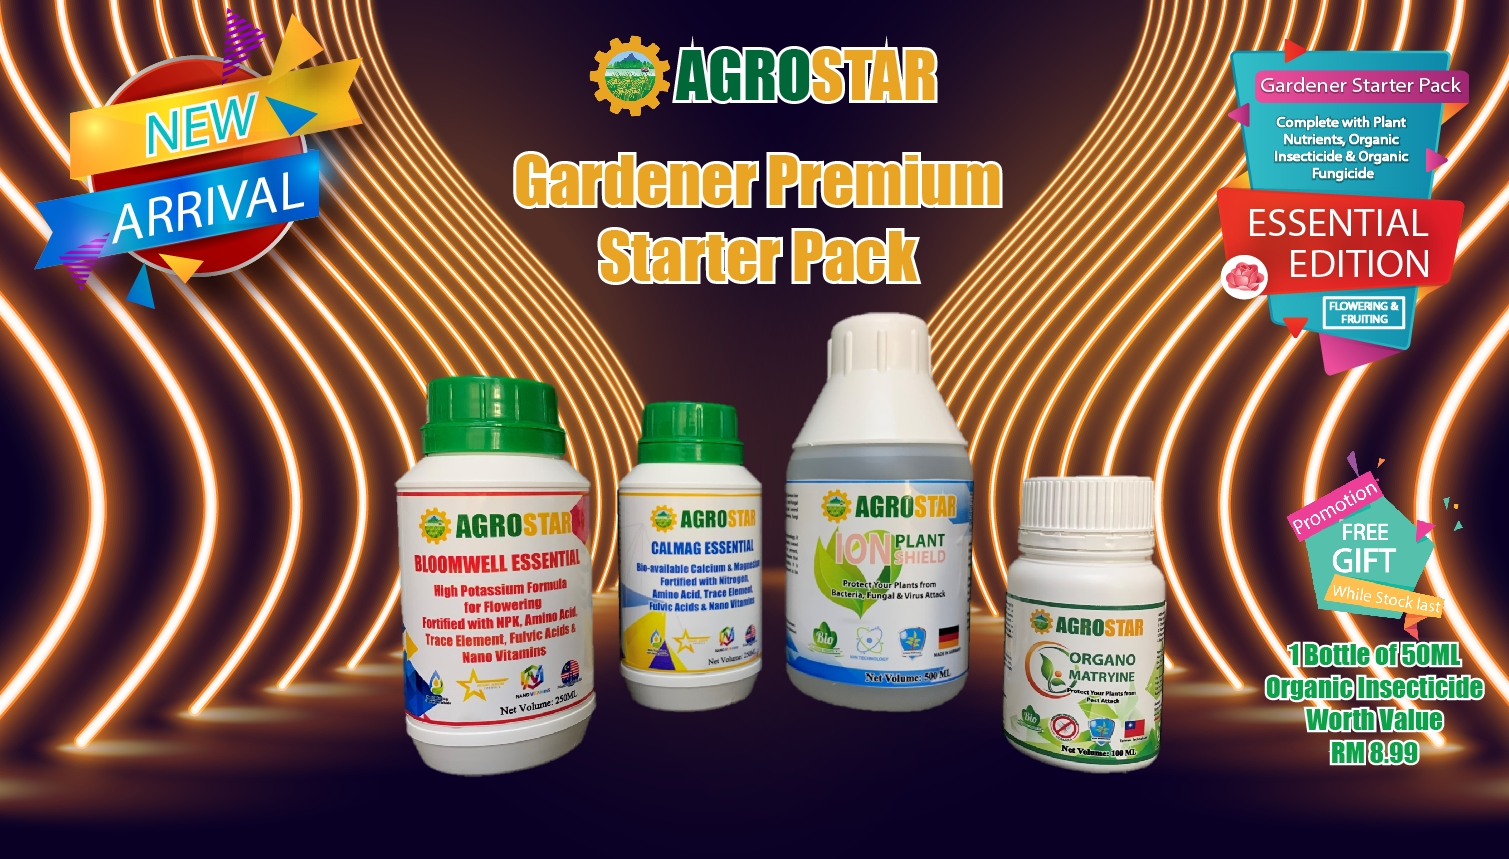 AGROSTAR Gardener Premium Starter Pack Essential Edition for Flowering and Fruiting Plants ( Complete with Bloomwell and Calmag Essential Plant Nutrients , Organo Matryine Organic Insecticide and Ion Plant Shield Organic Fungicide ) Plus Free Gift